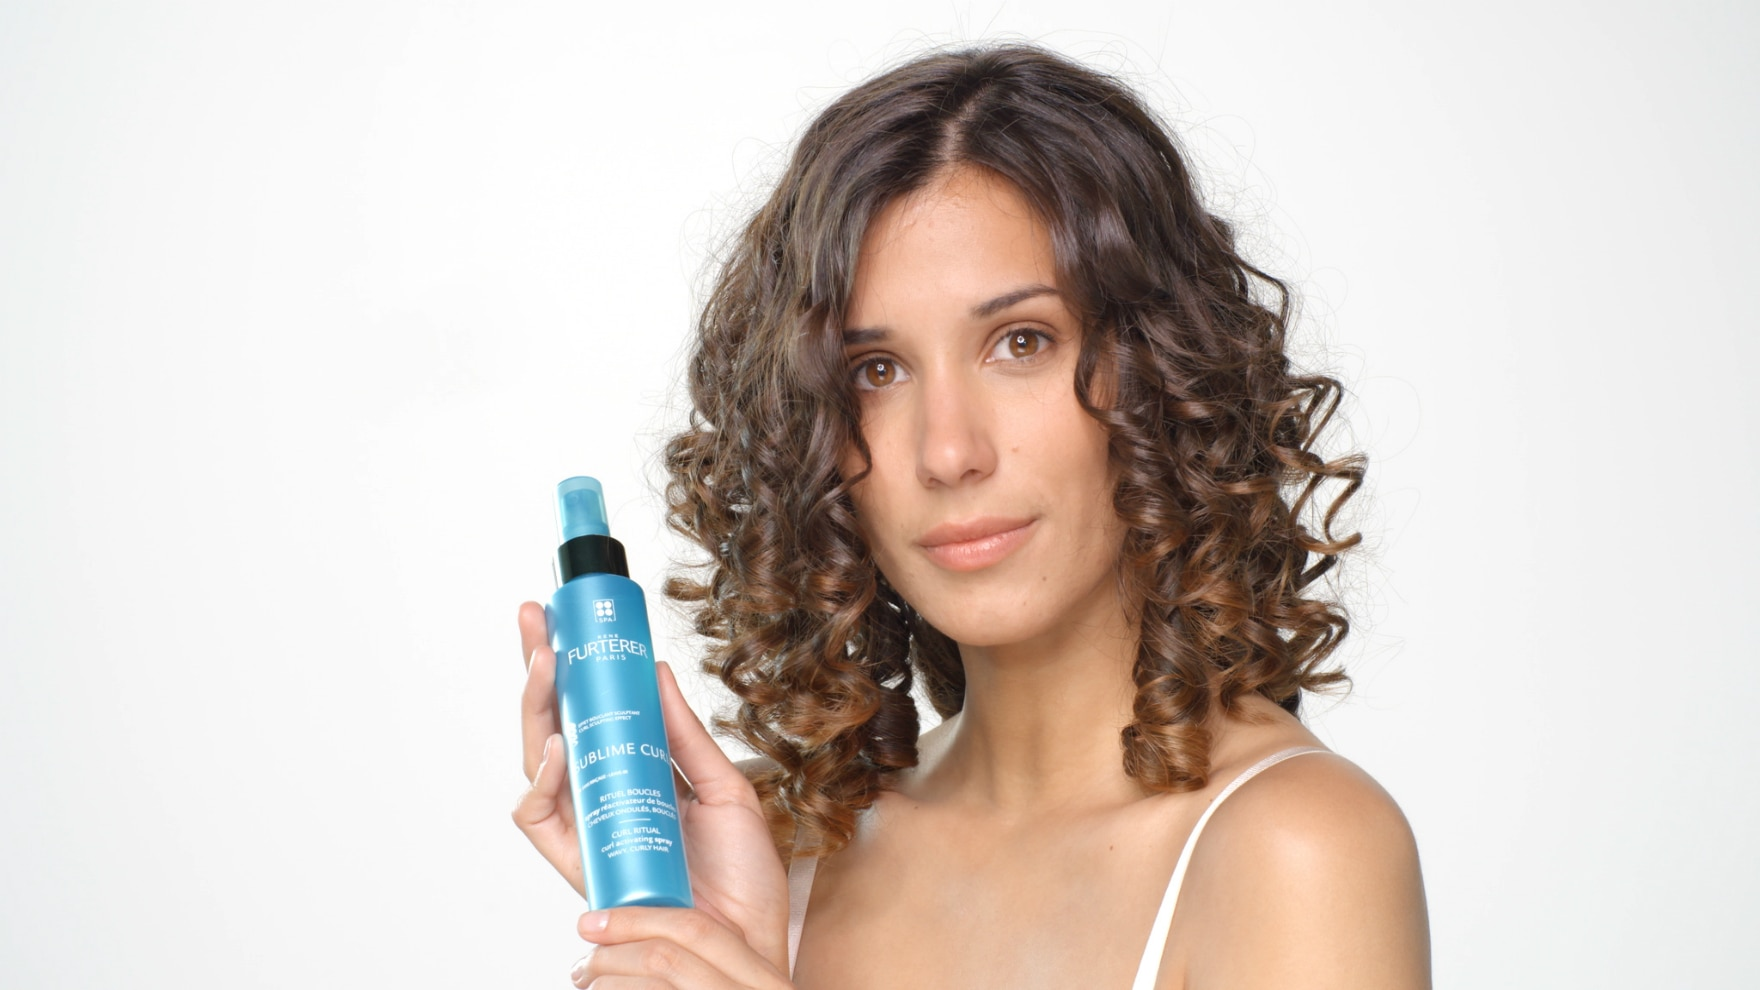 Karite Sublime Curl Spray Application